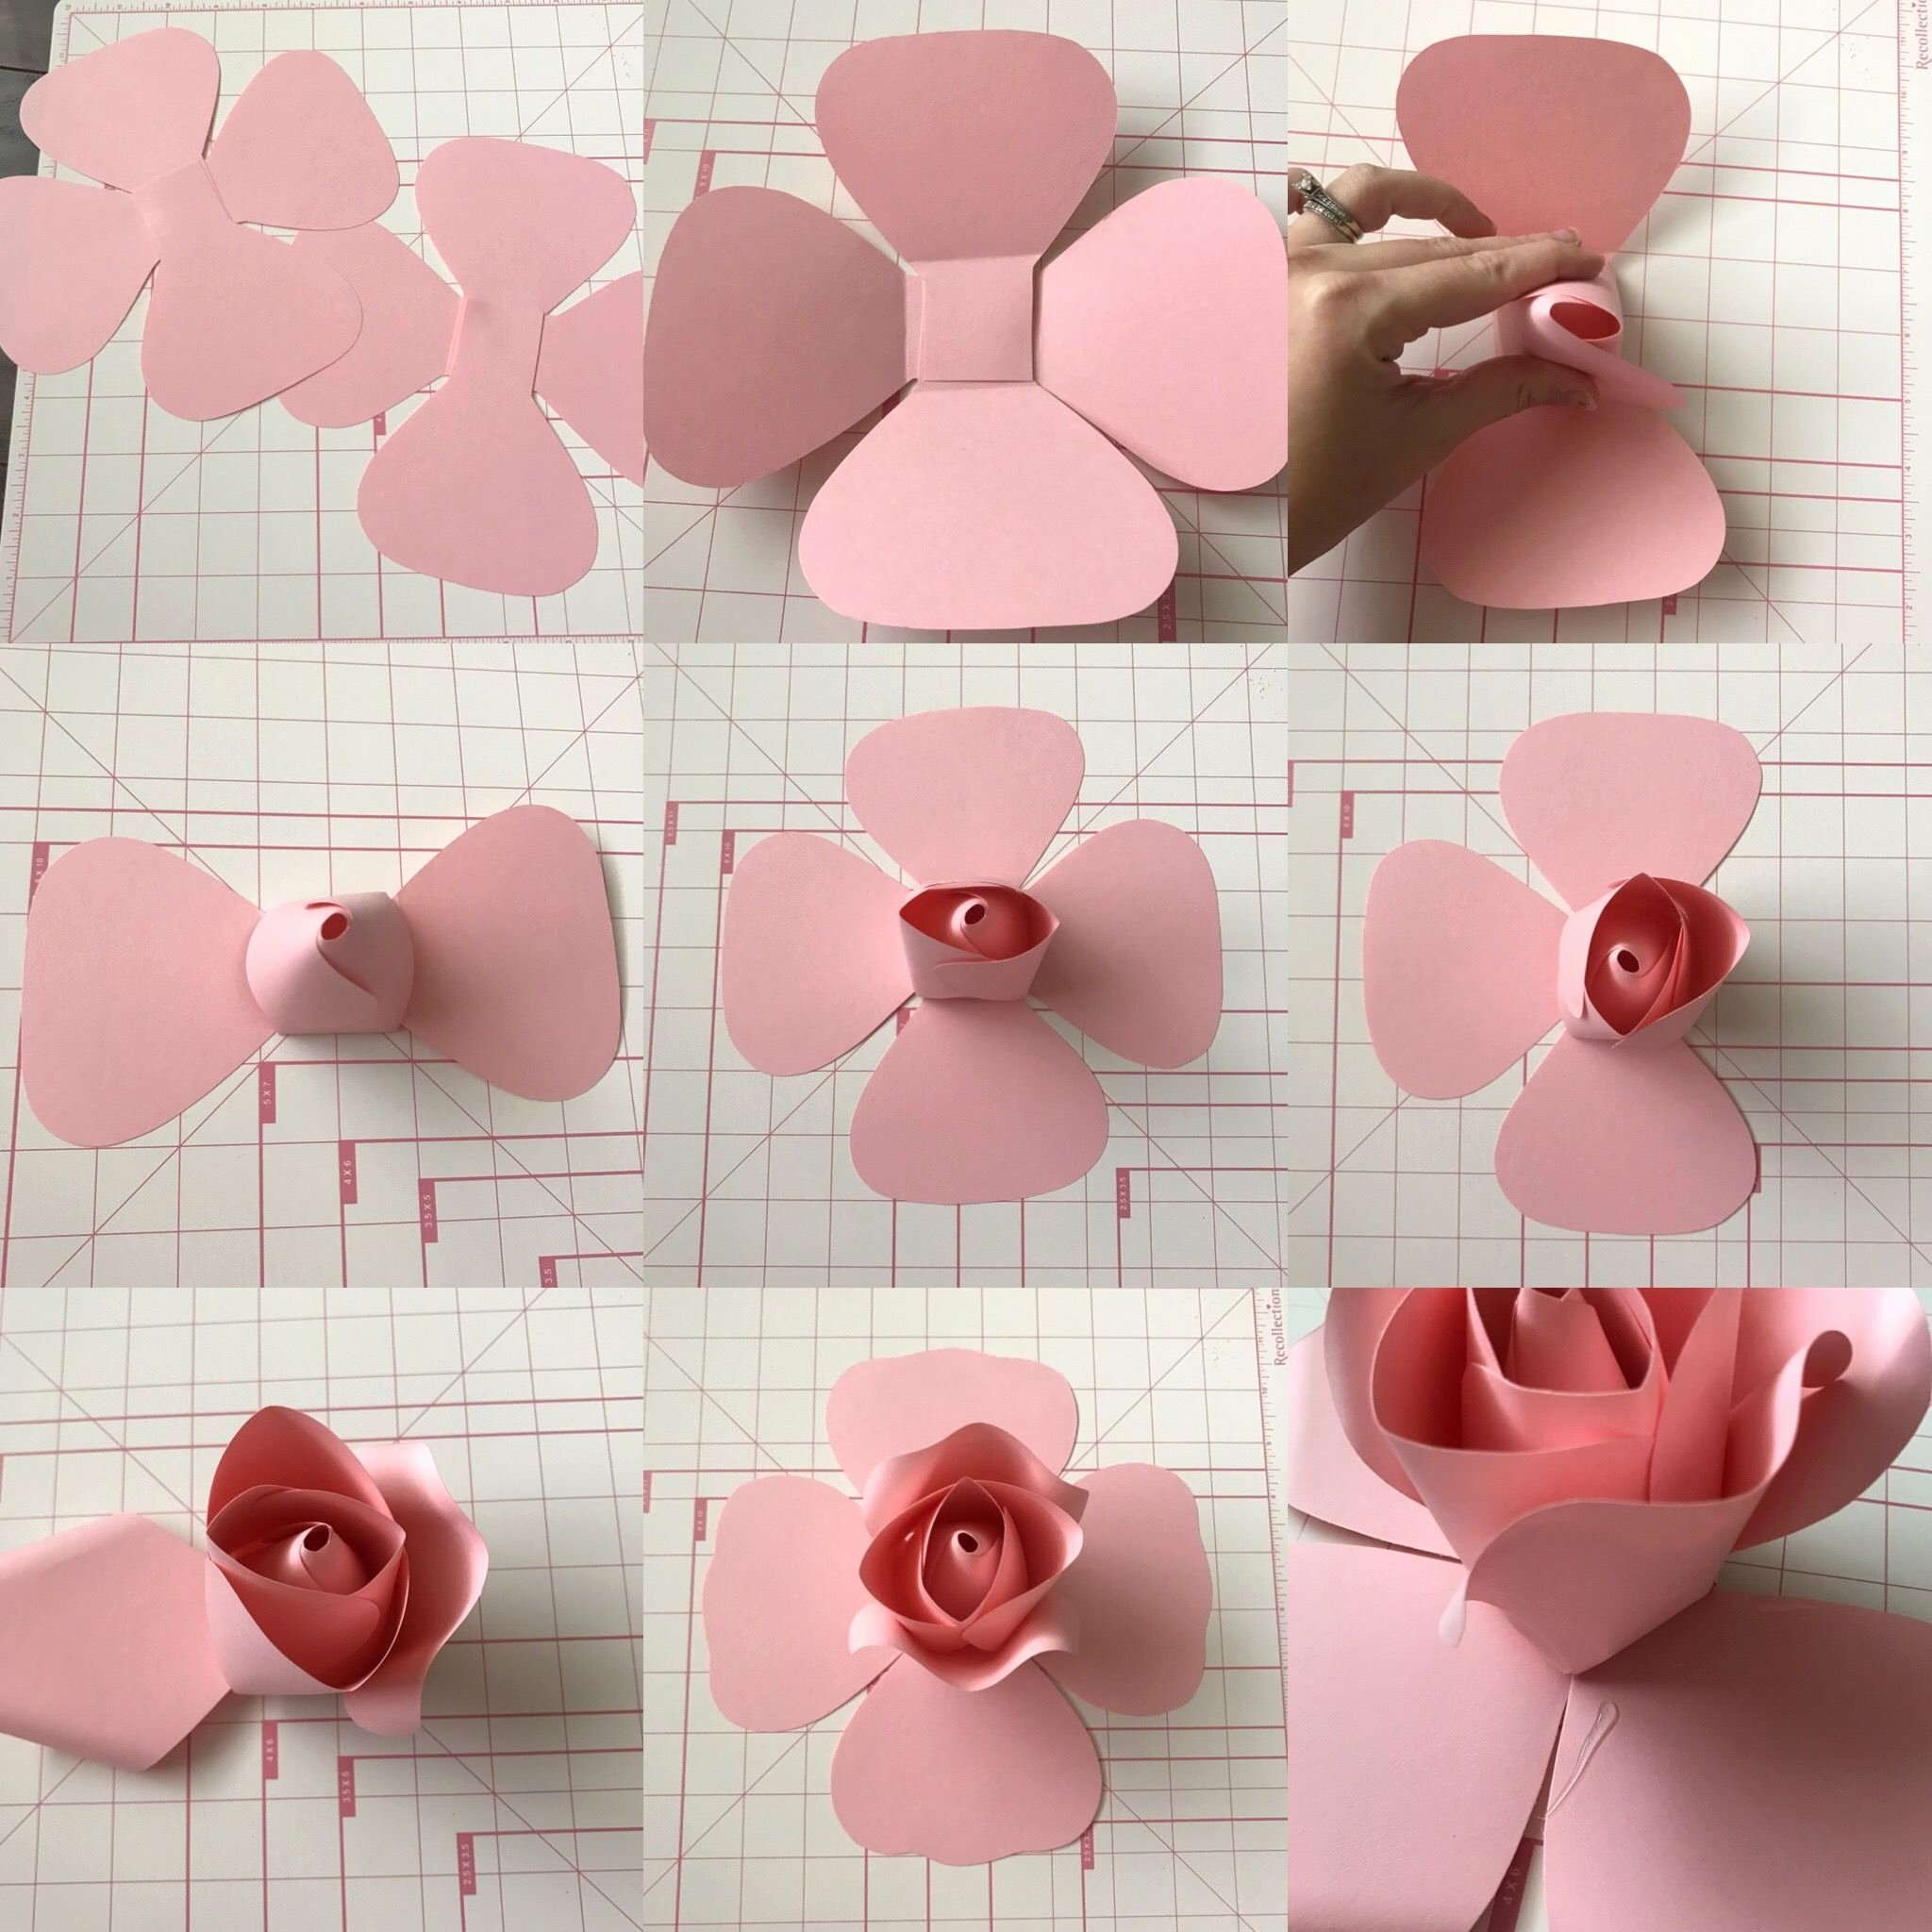 Paper Rose Template Printable Elegant Free Templates and Tutorial On Ann Neville Design Blog